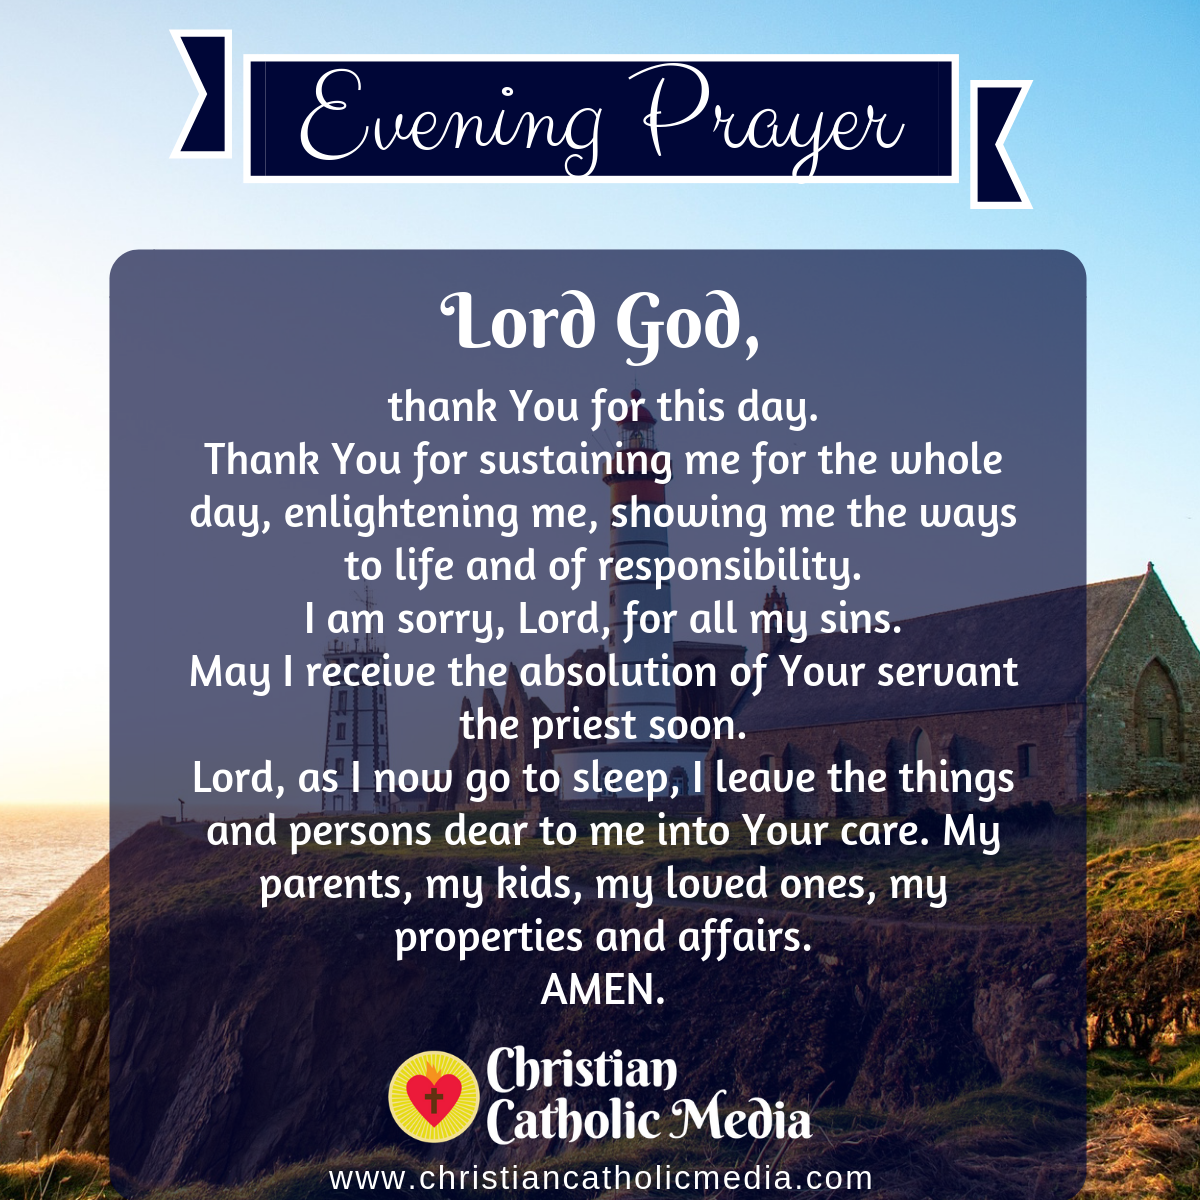 Evening Prayer Catholic Friday 5-22-2020